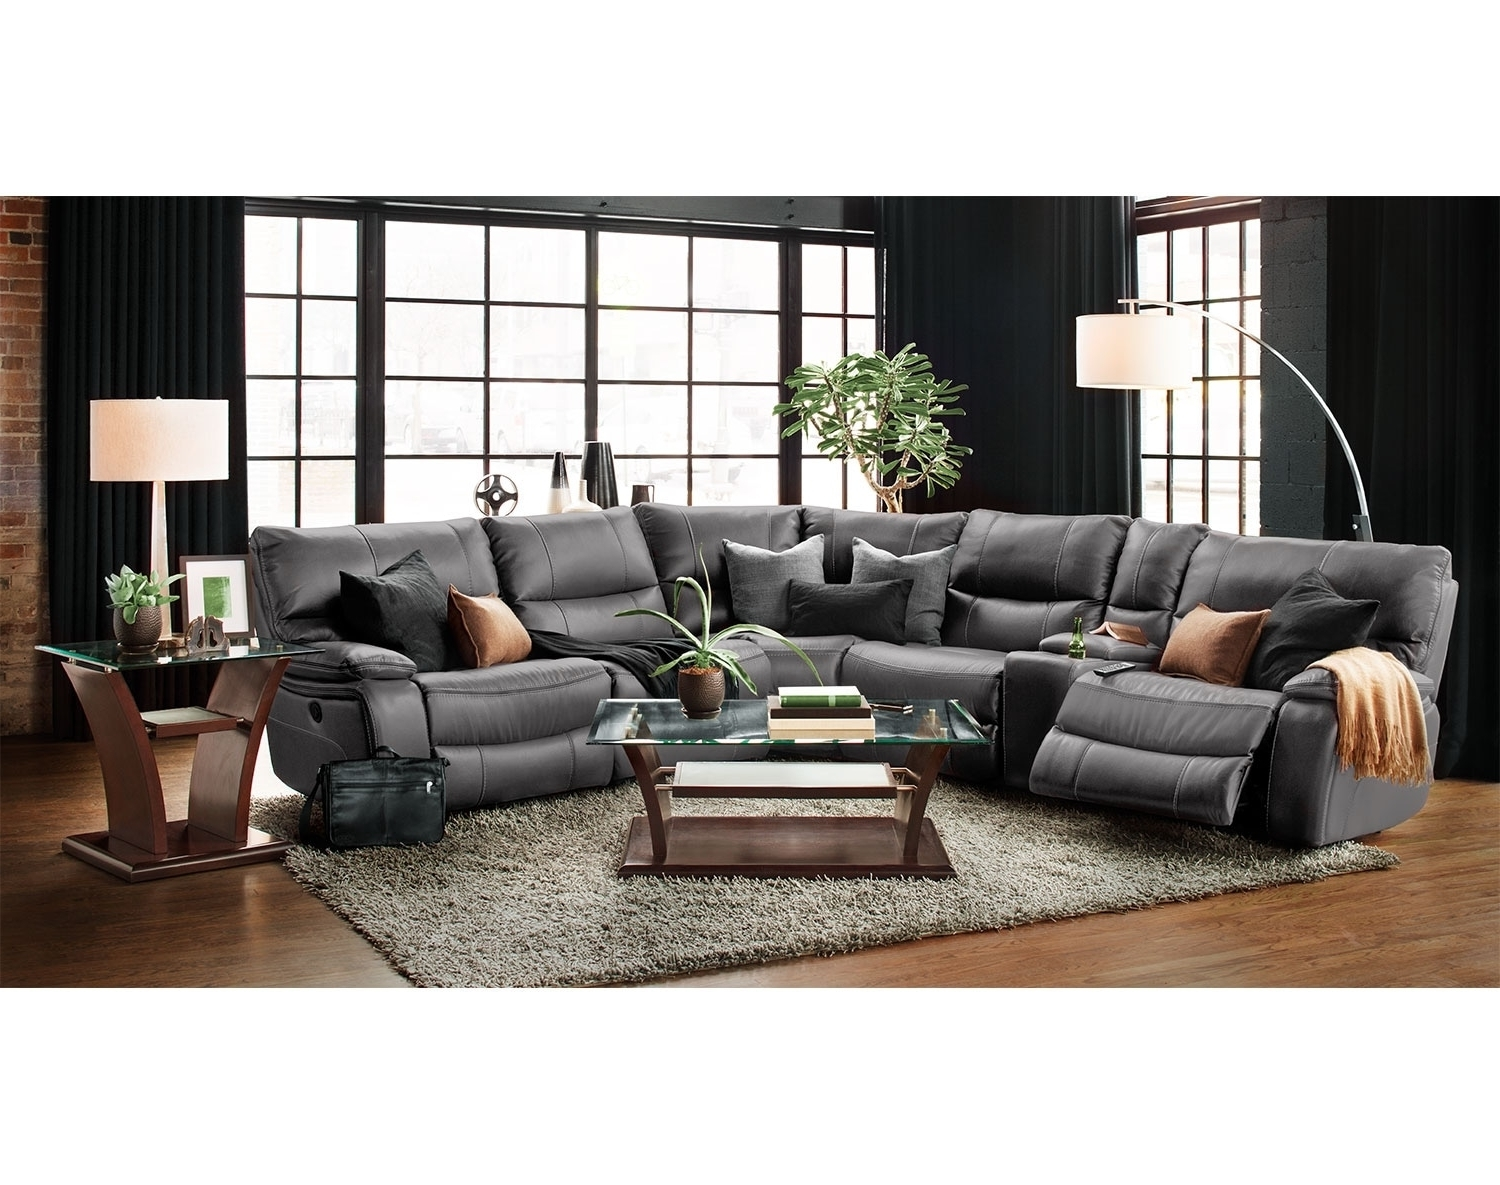 Latest Orlando Sectional Sofas Intended For The Orlando Collection – Gray (View 2 of 15)